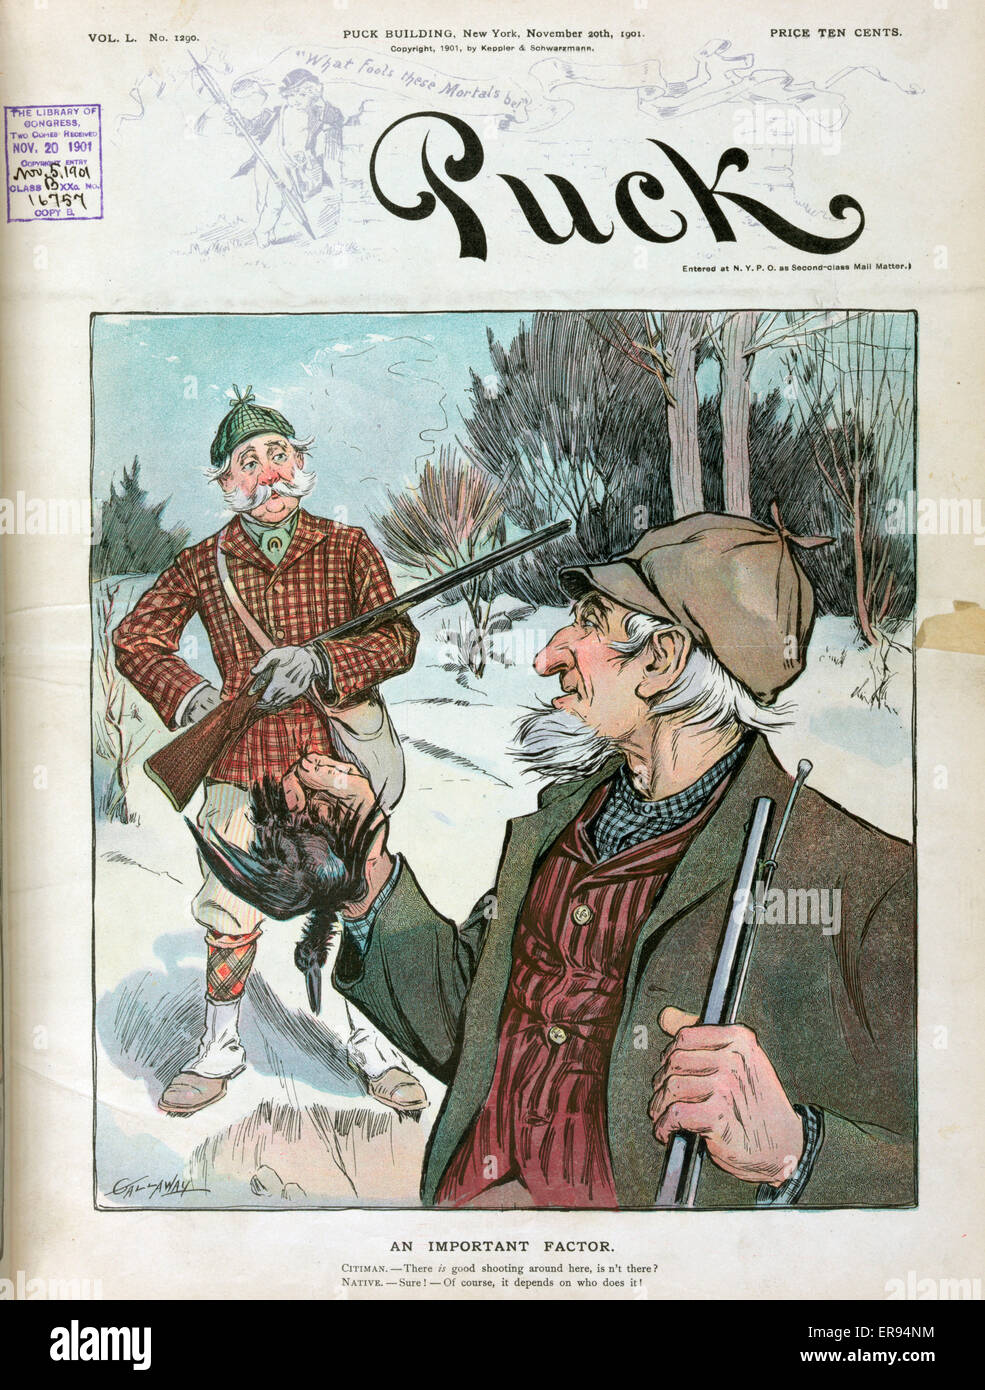 An important factor. Illustration shows a local hunter in the foreground and a visiting hunter from the city in - Stock Image